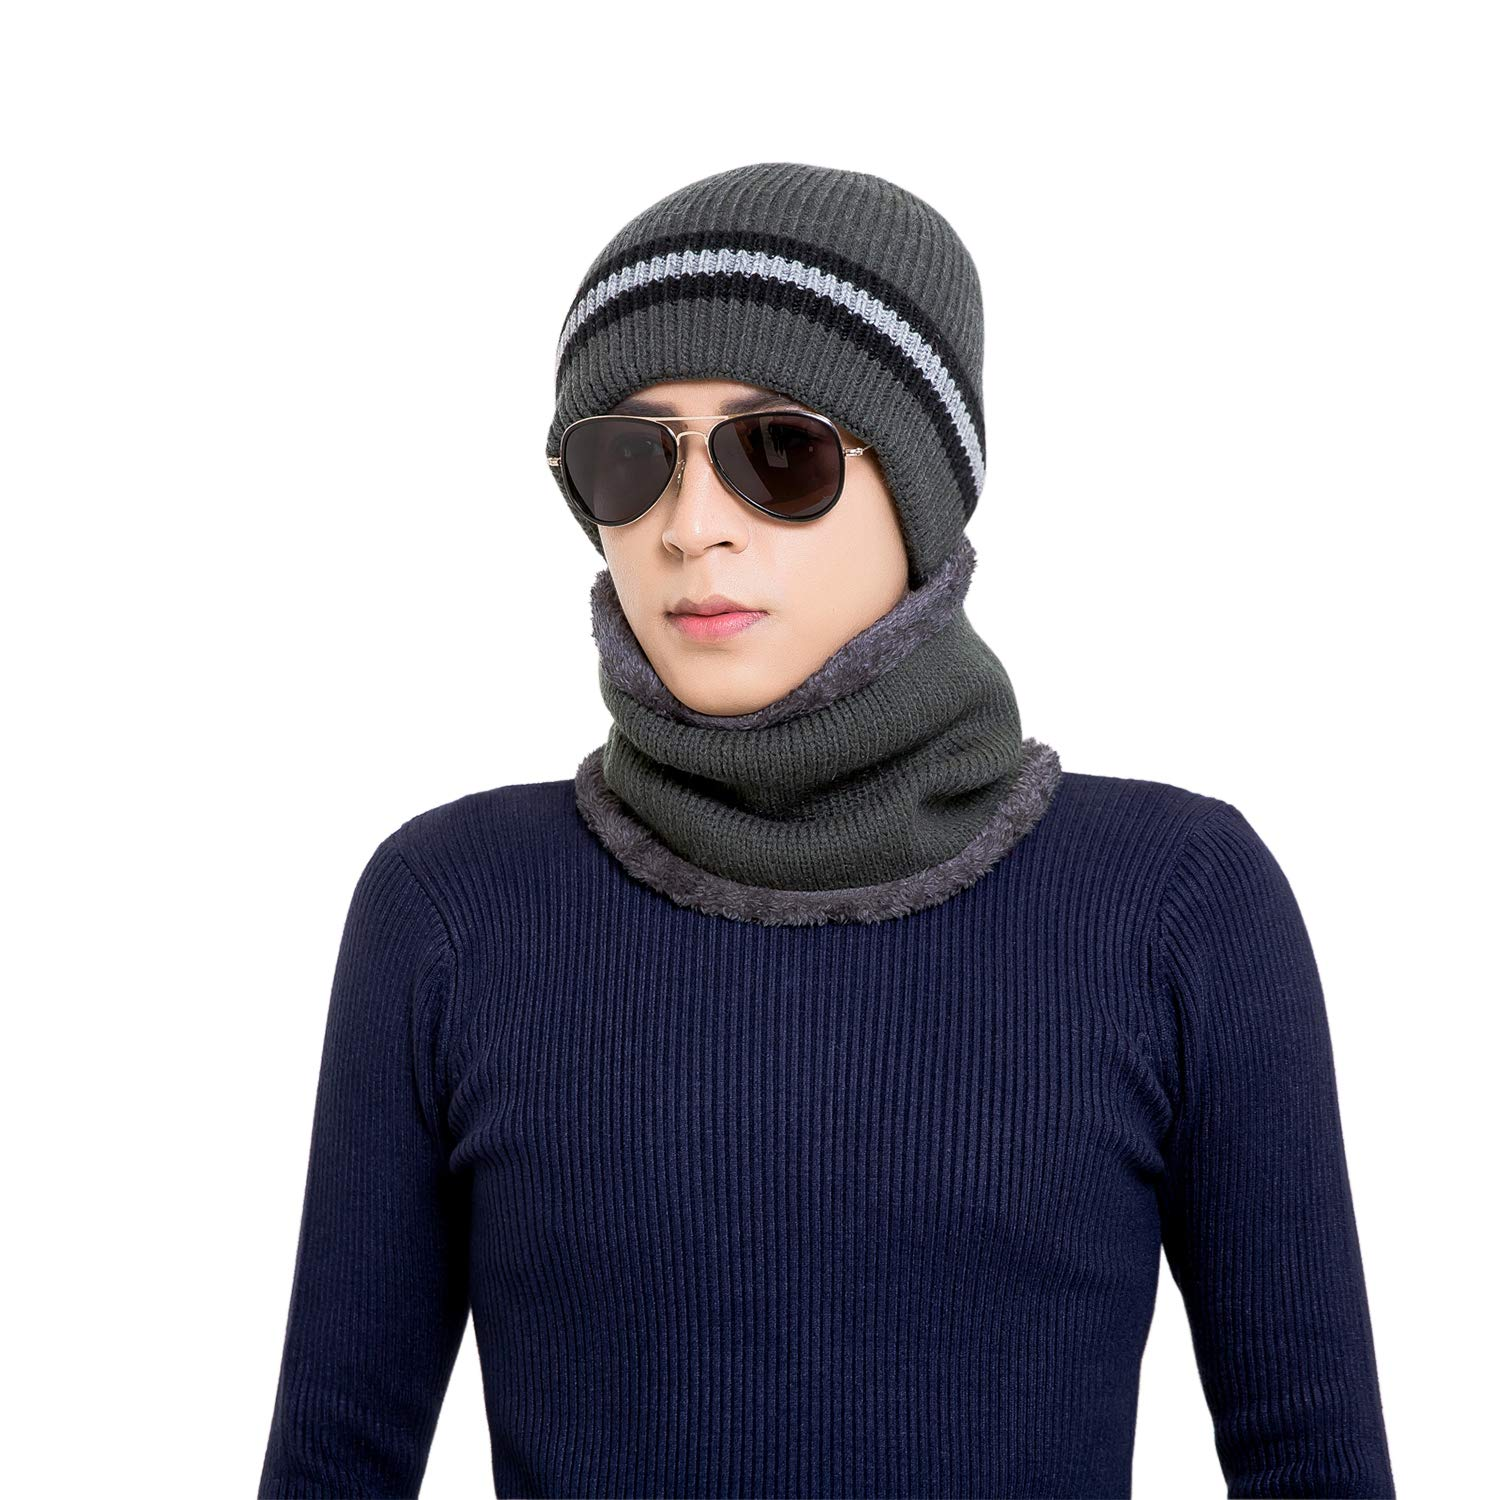 2-Pieces Winter Warm Knit Beanie Hat Scarf Set Fleece Lined Skull Cap for Men